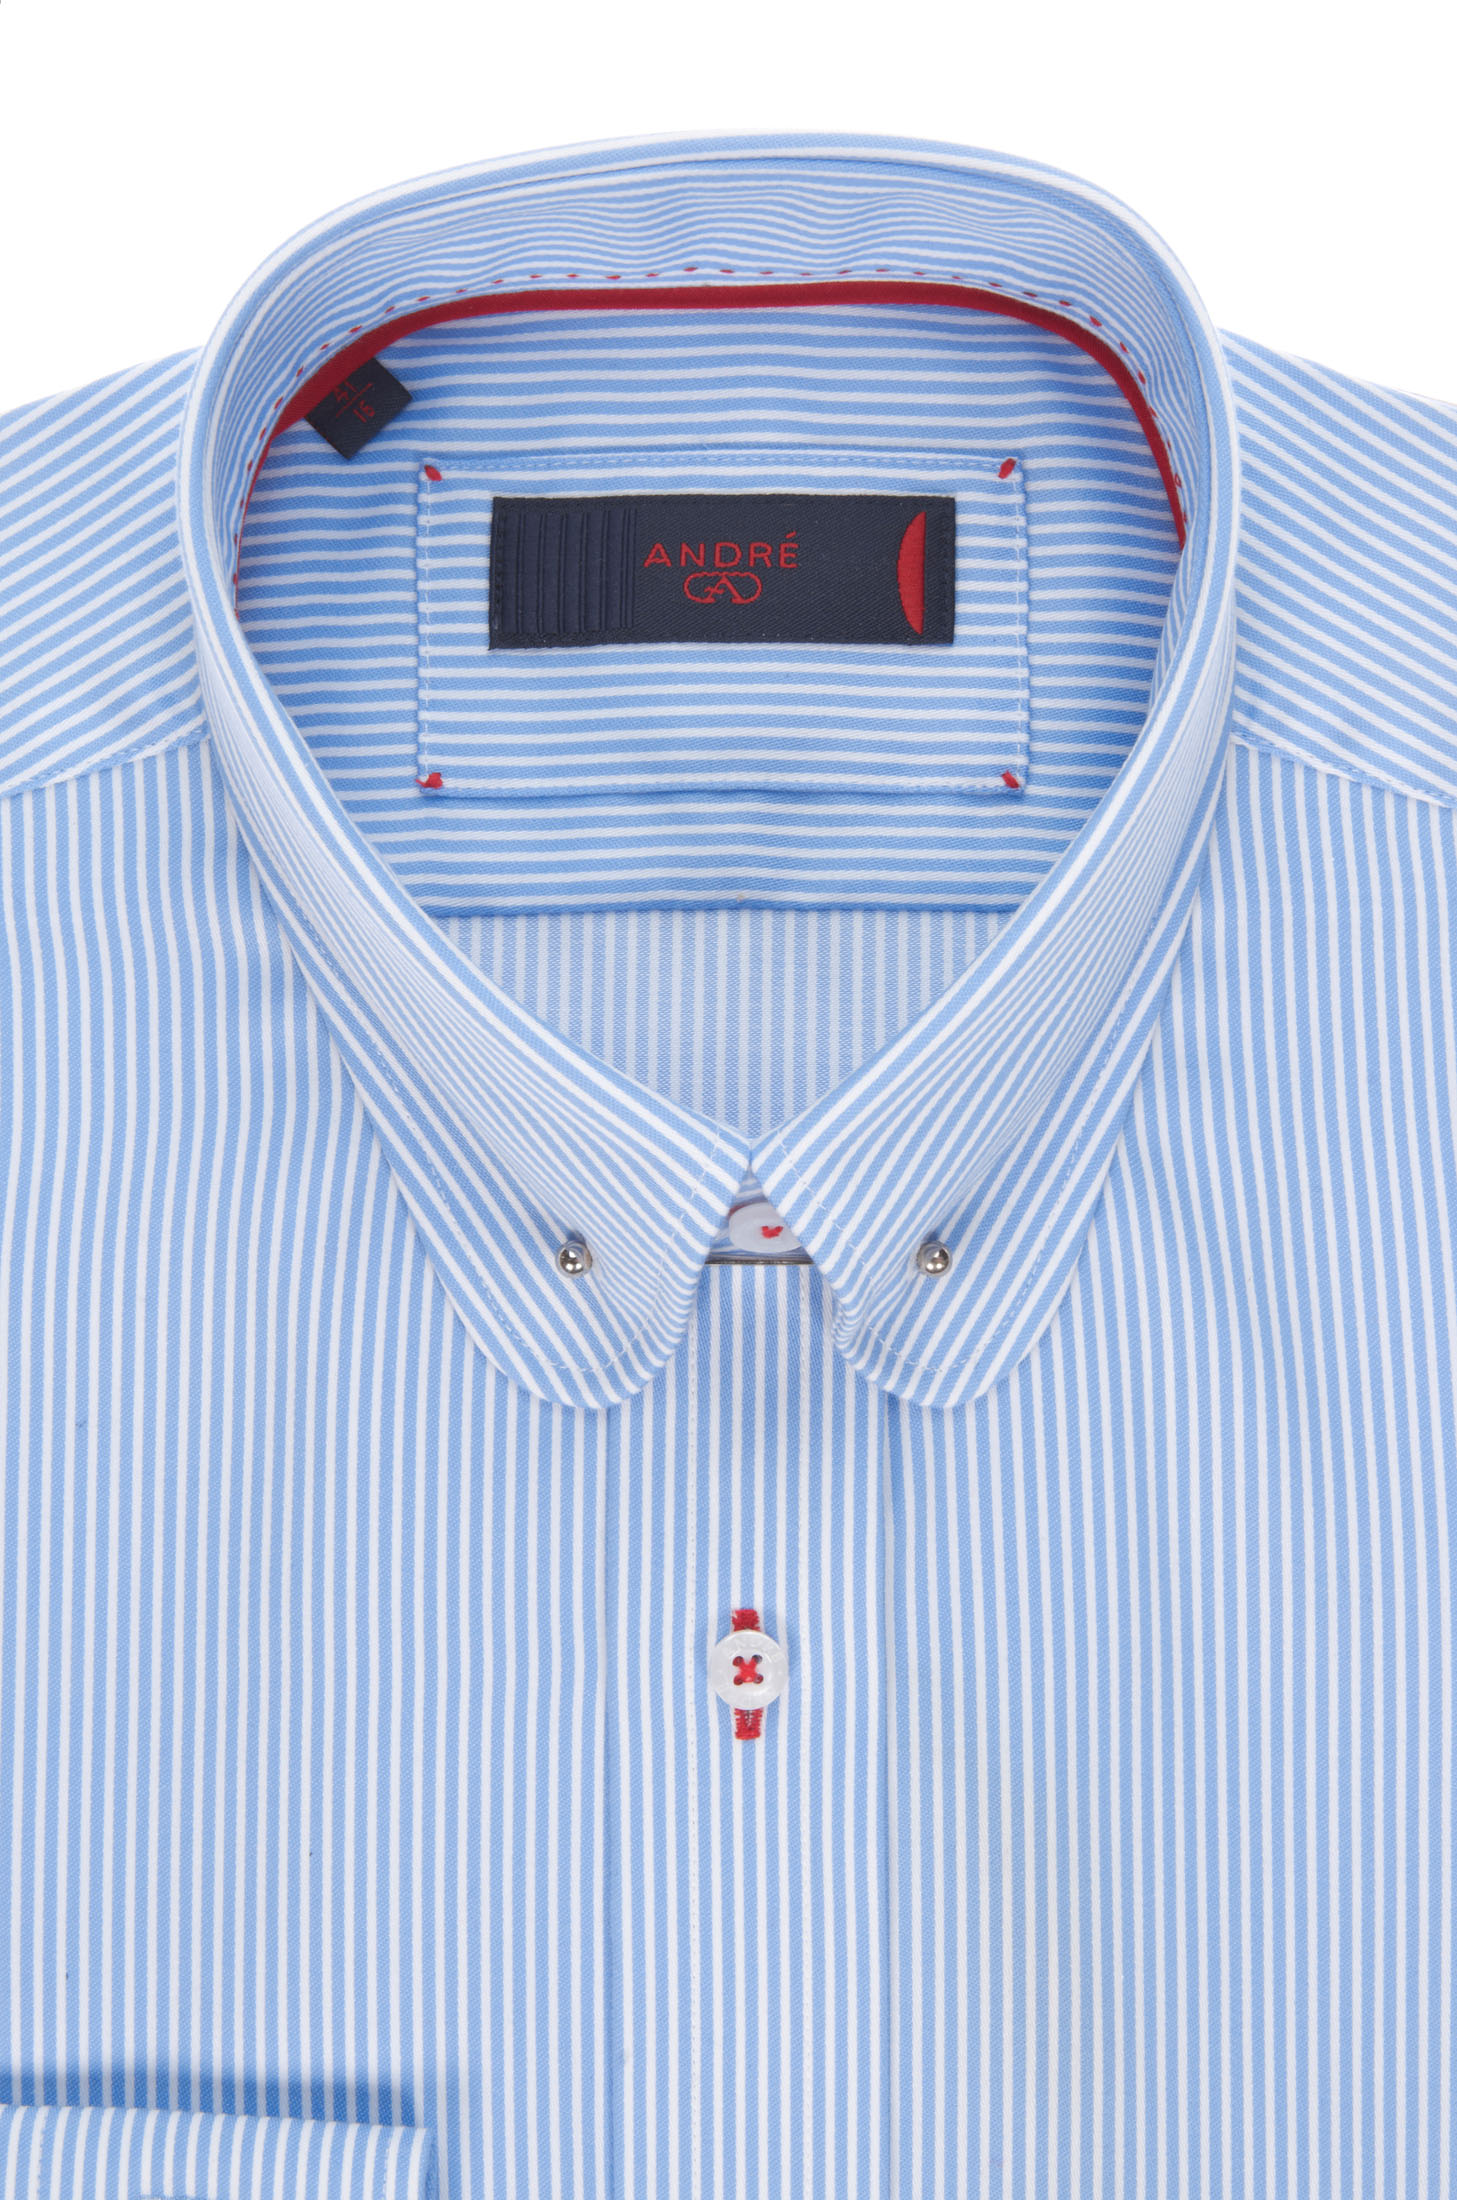 A13 Pin Collar Blue Tailored Fit